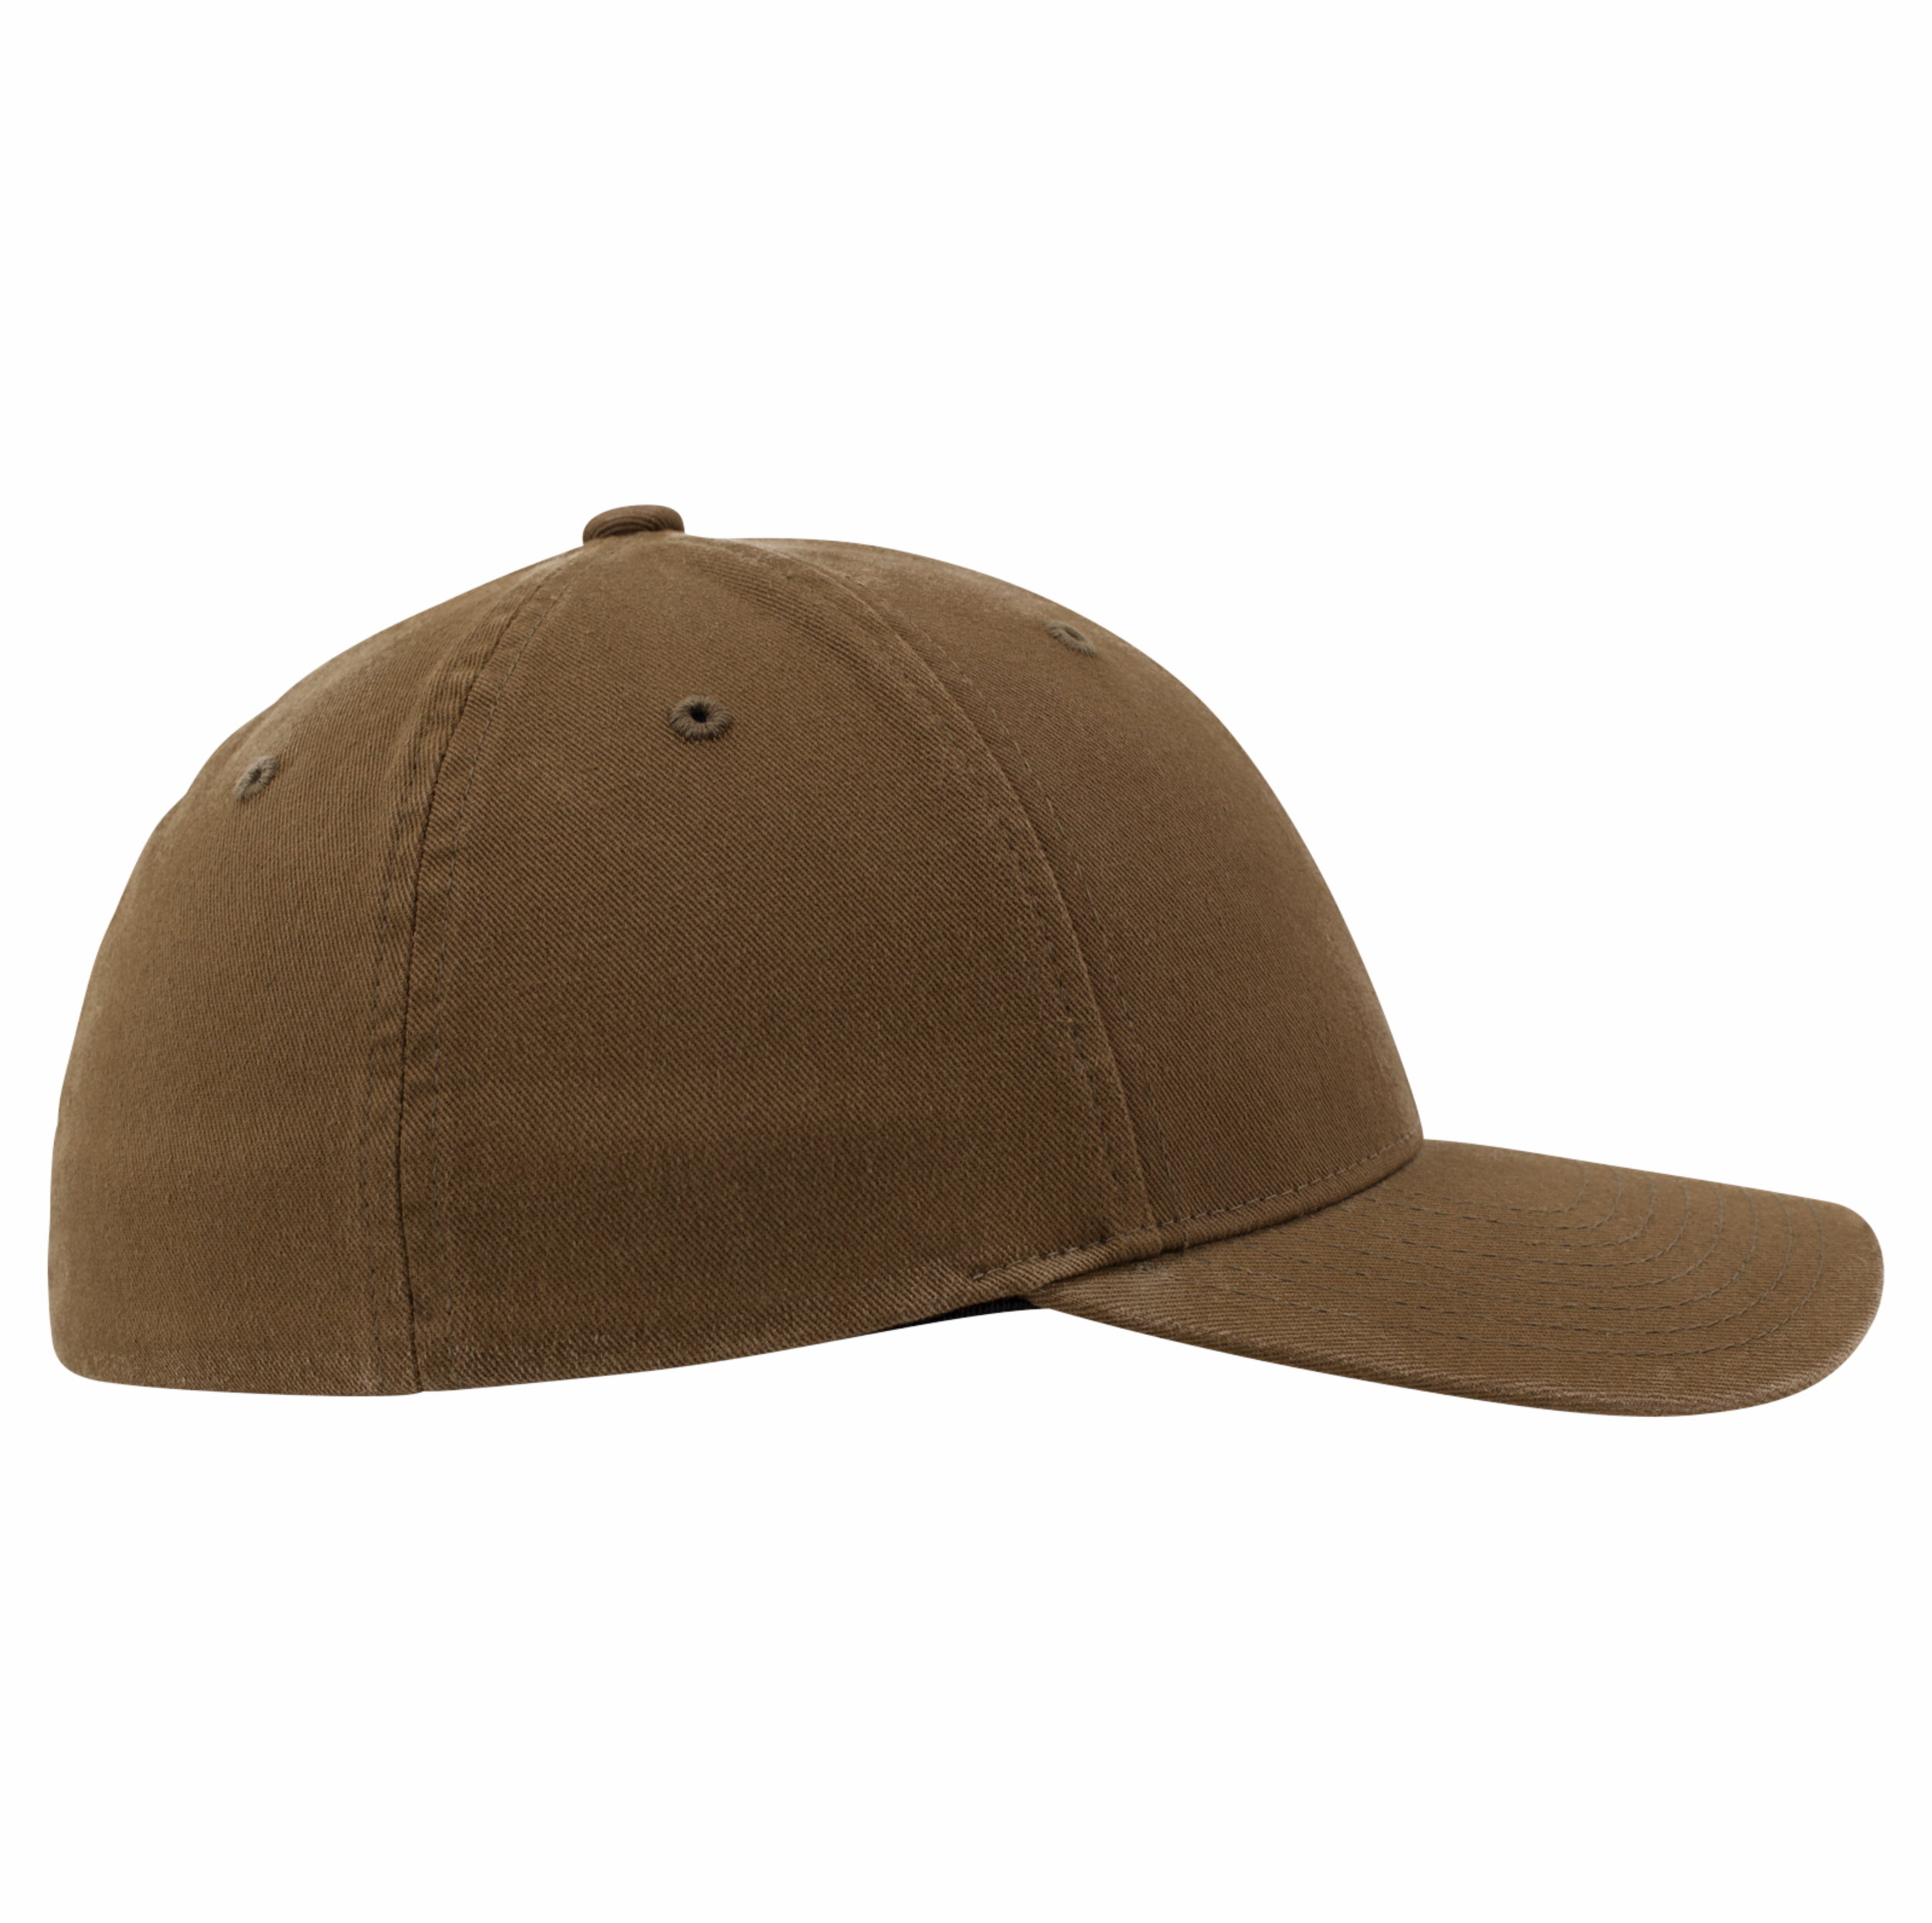 d4824082d56 Flexfit Garment Washed Cotton Dad Cap - Khaki — Berlin Snapbacks